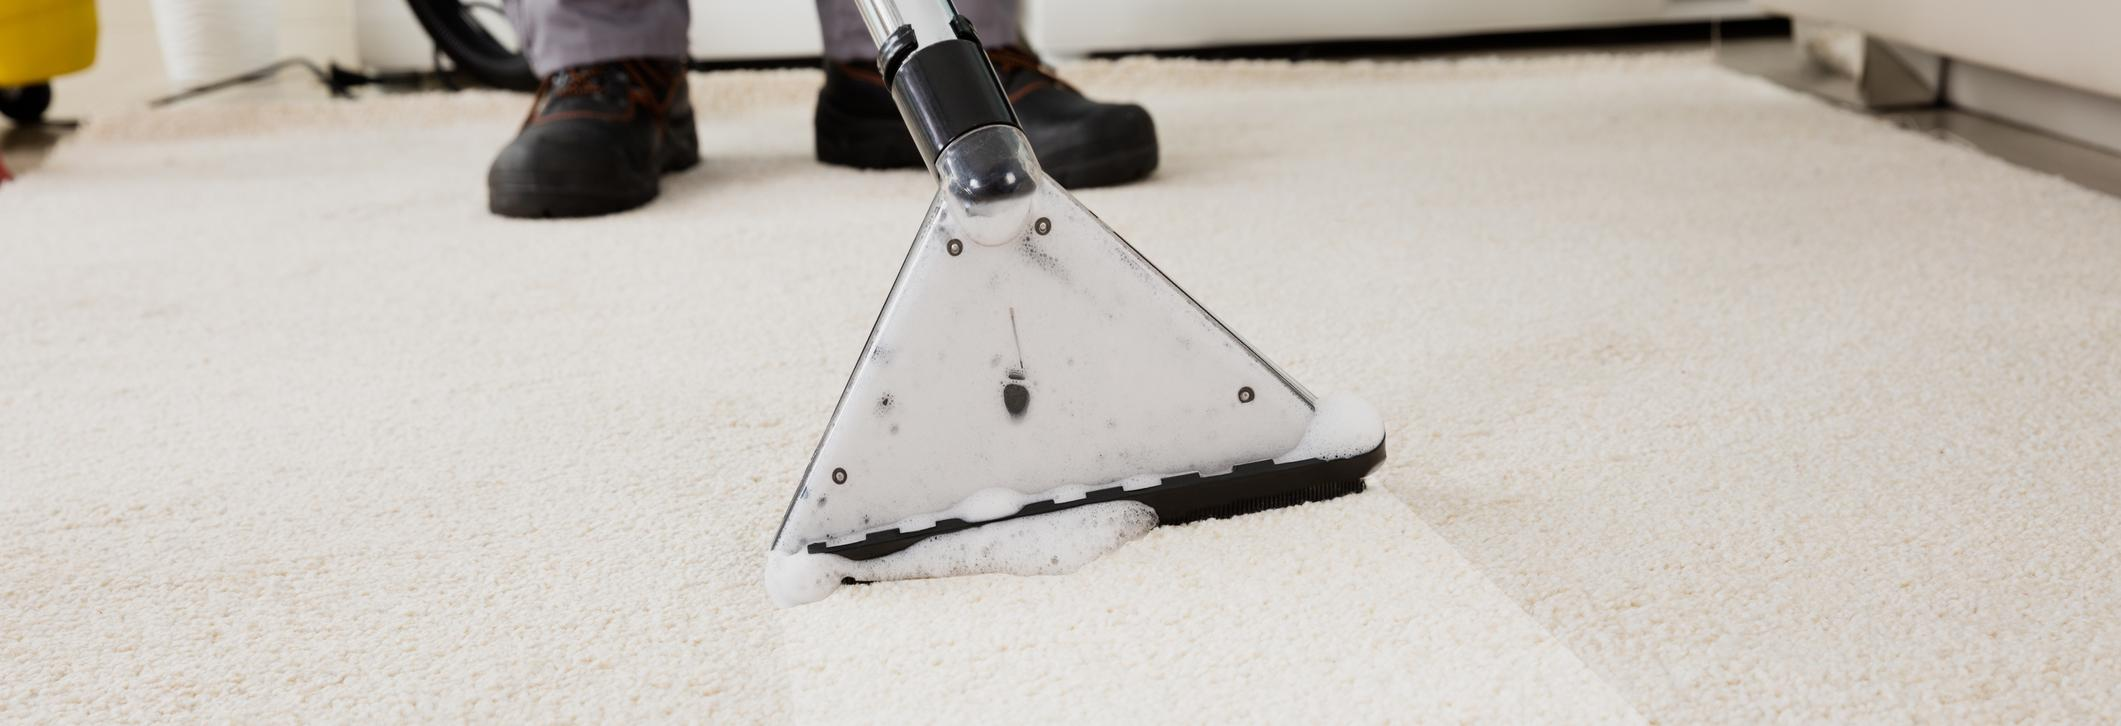 teasdale fenton carpet cleaning restoration cincinnati ohio